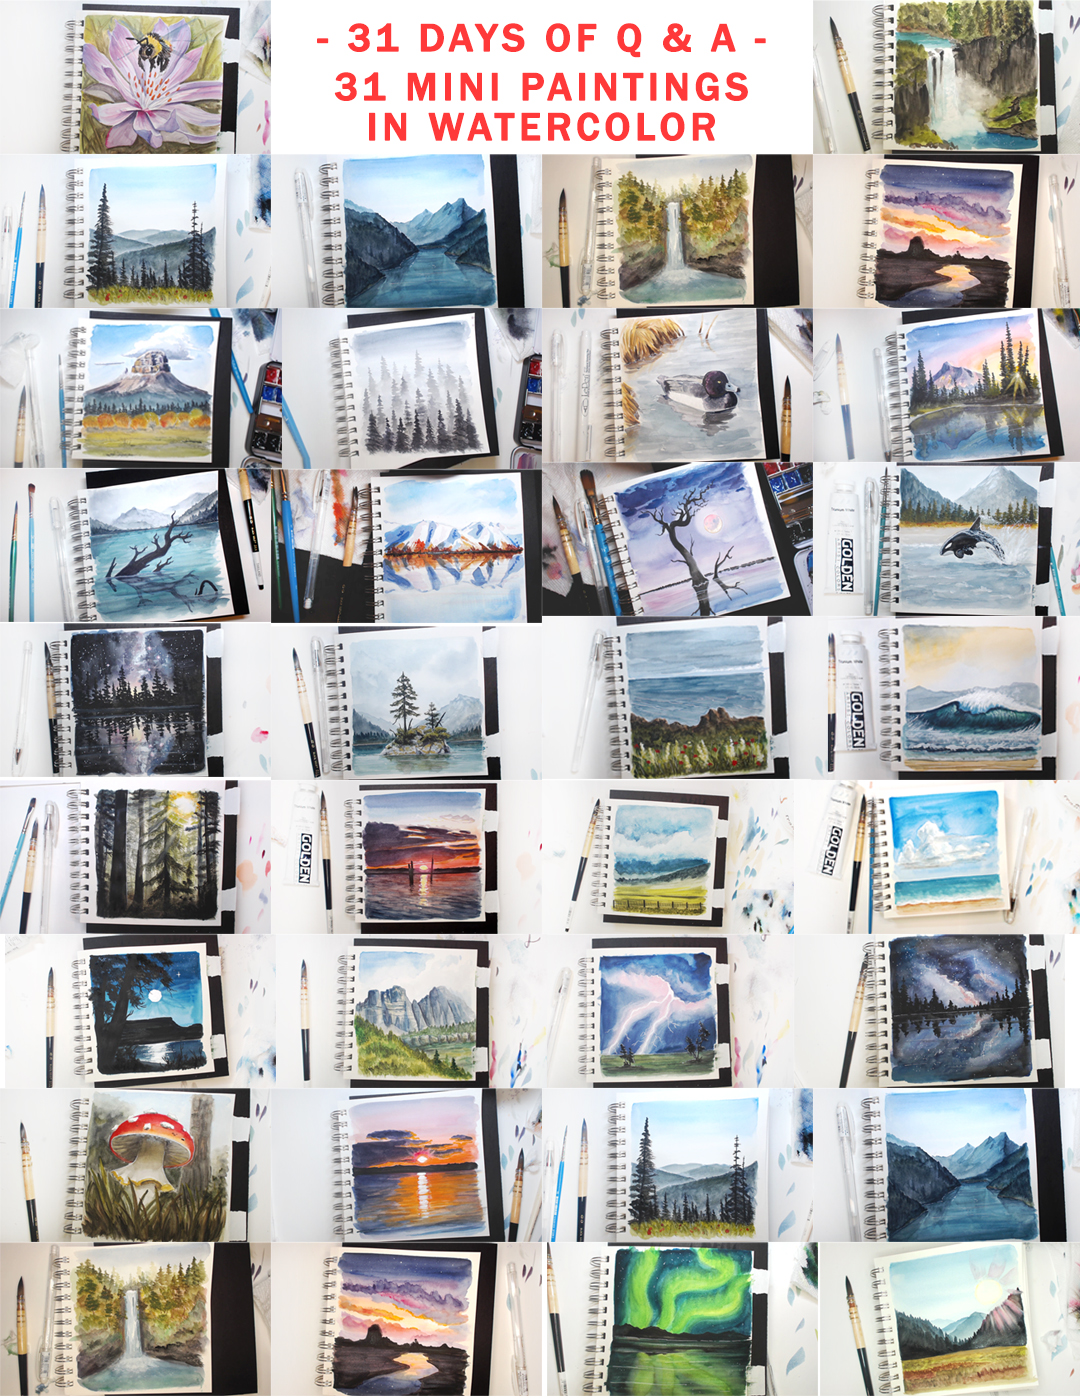 photos of 31 square painting studies of landscapes